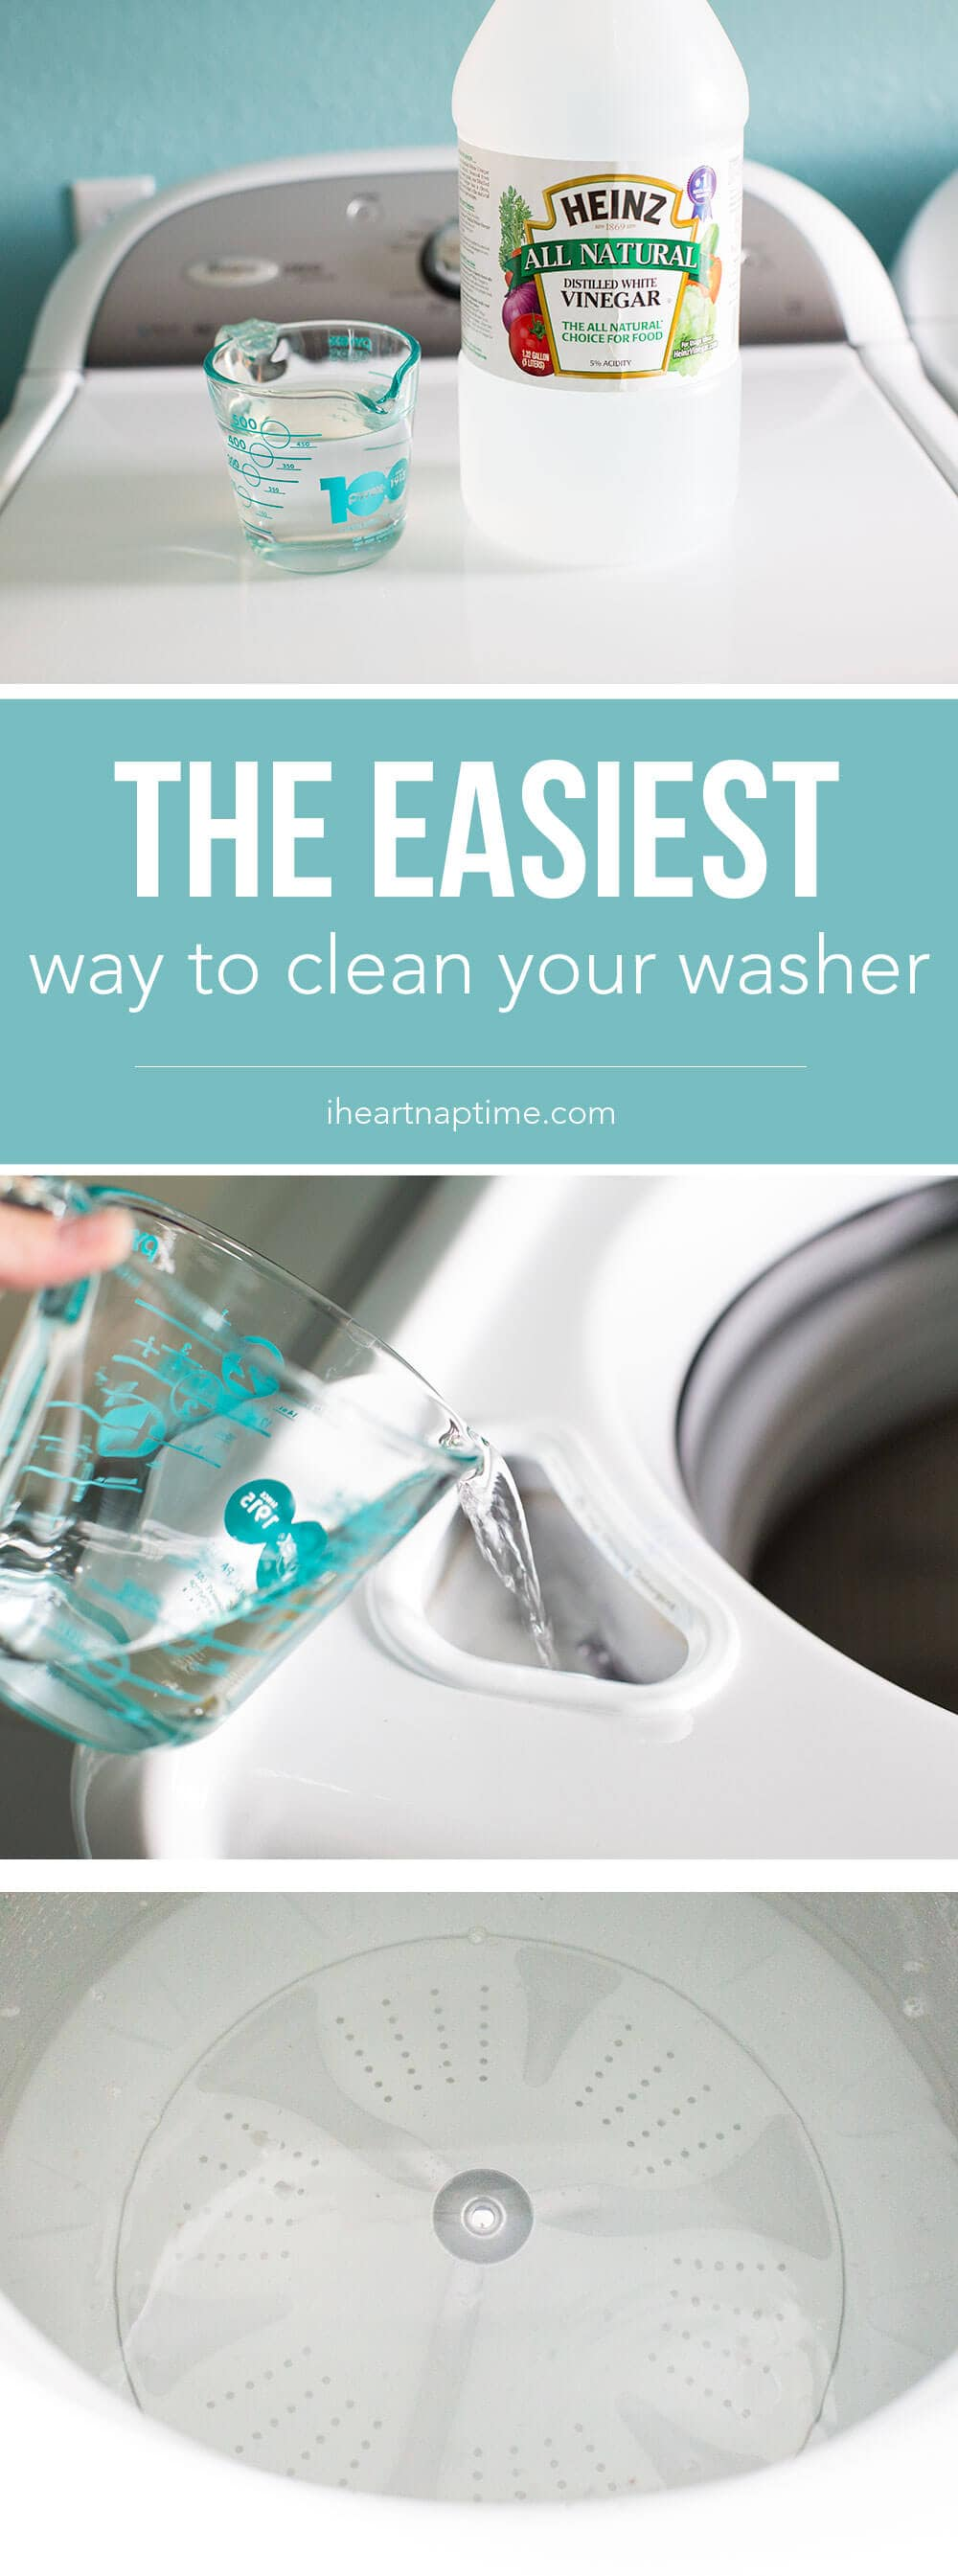 The Easiest Way to Clean Your Washer - I Heart Nap Time